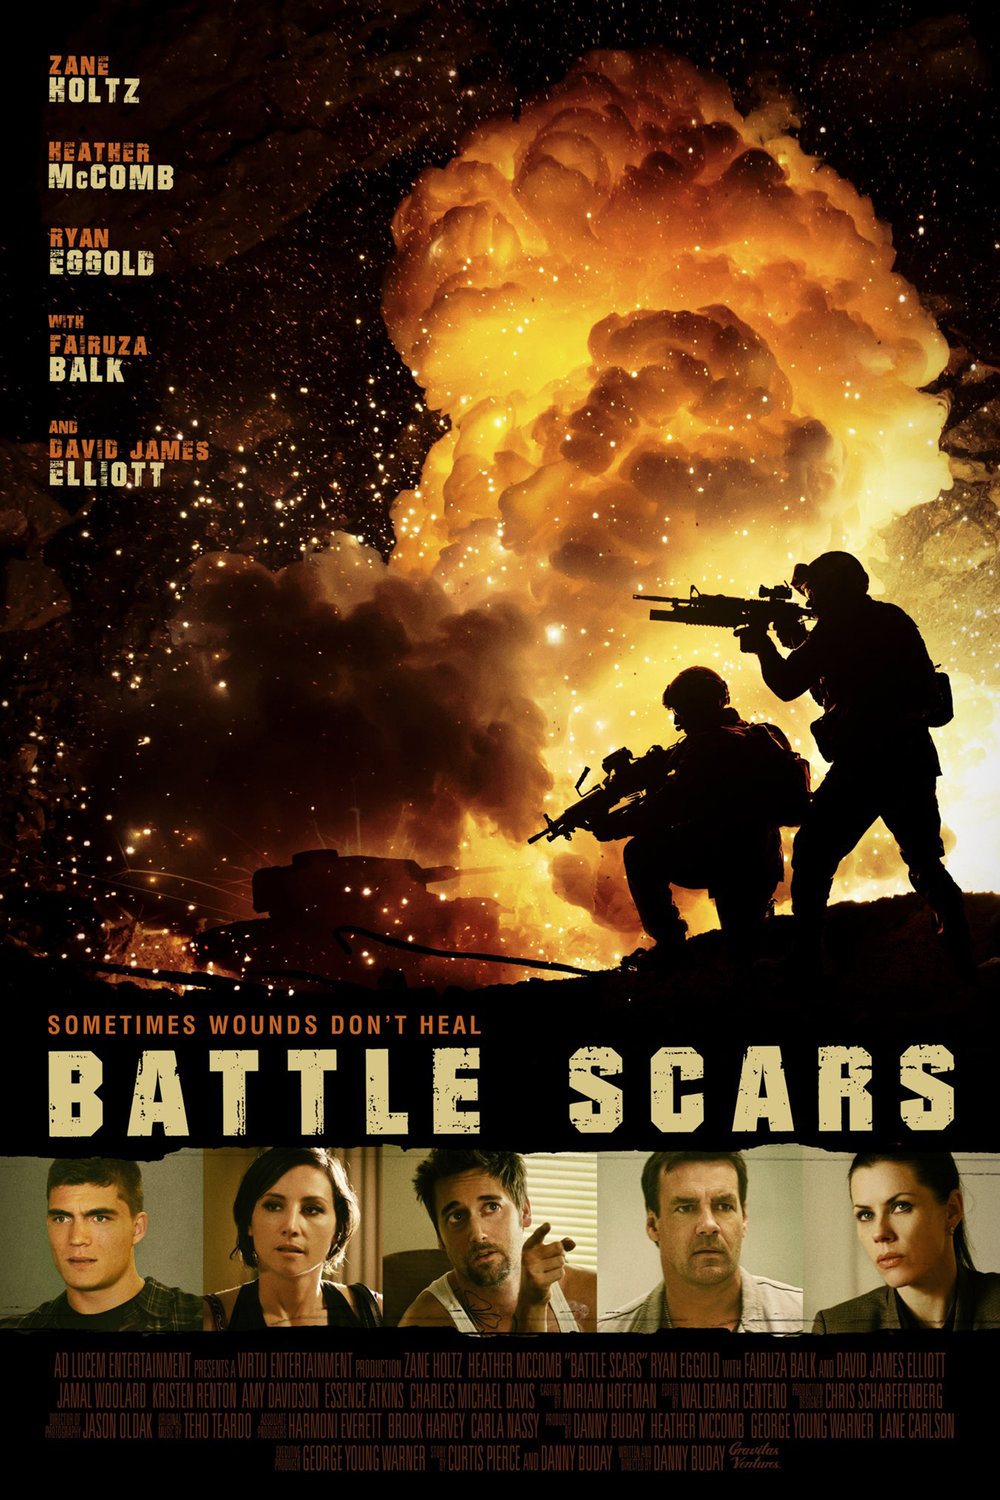 BATTLE SCARS   Feature Film, Drama/War  Studio - Gravitas Ventures  Director - Danny Buday  Editor - Waldemar Centeno